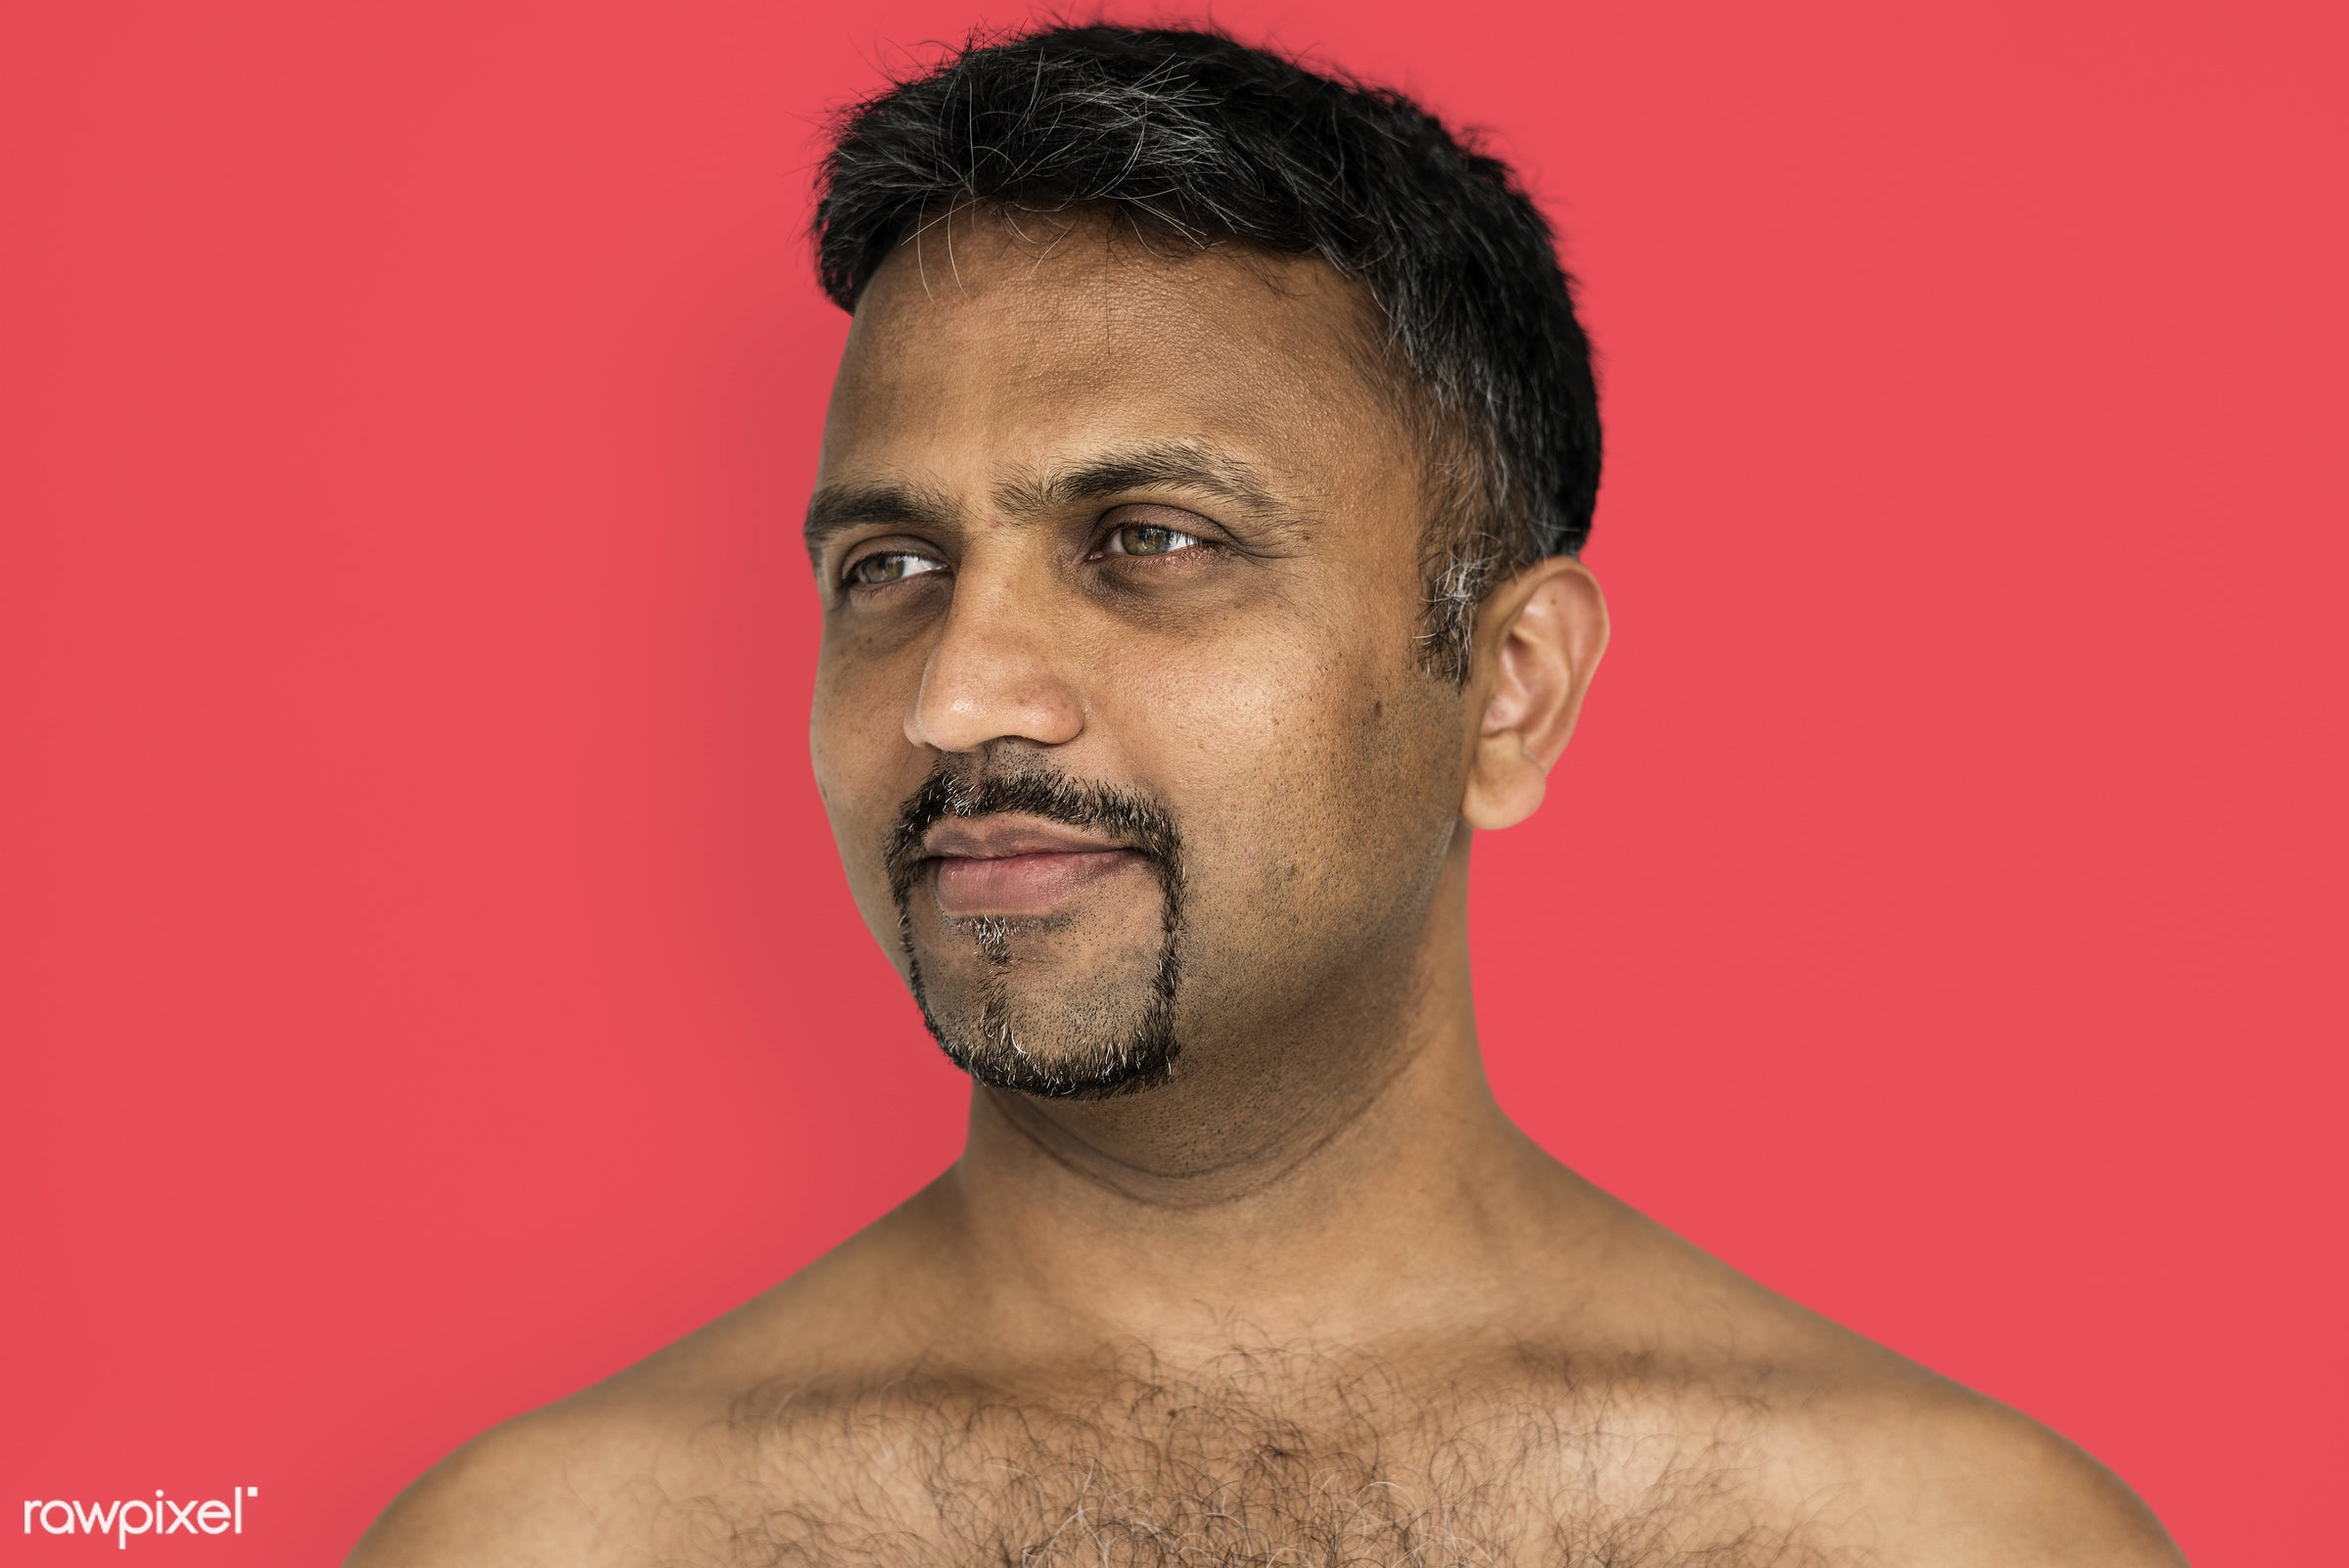 studio, face, person, joy, indian ethnicity, people, looking, bare chest, solo, happy, smile, cheerful, man, smiling,...